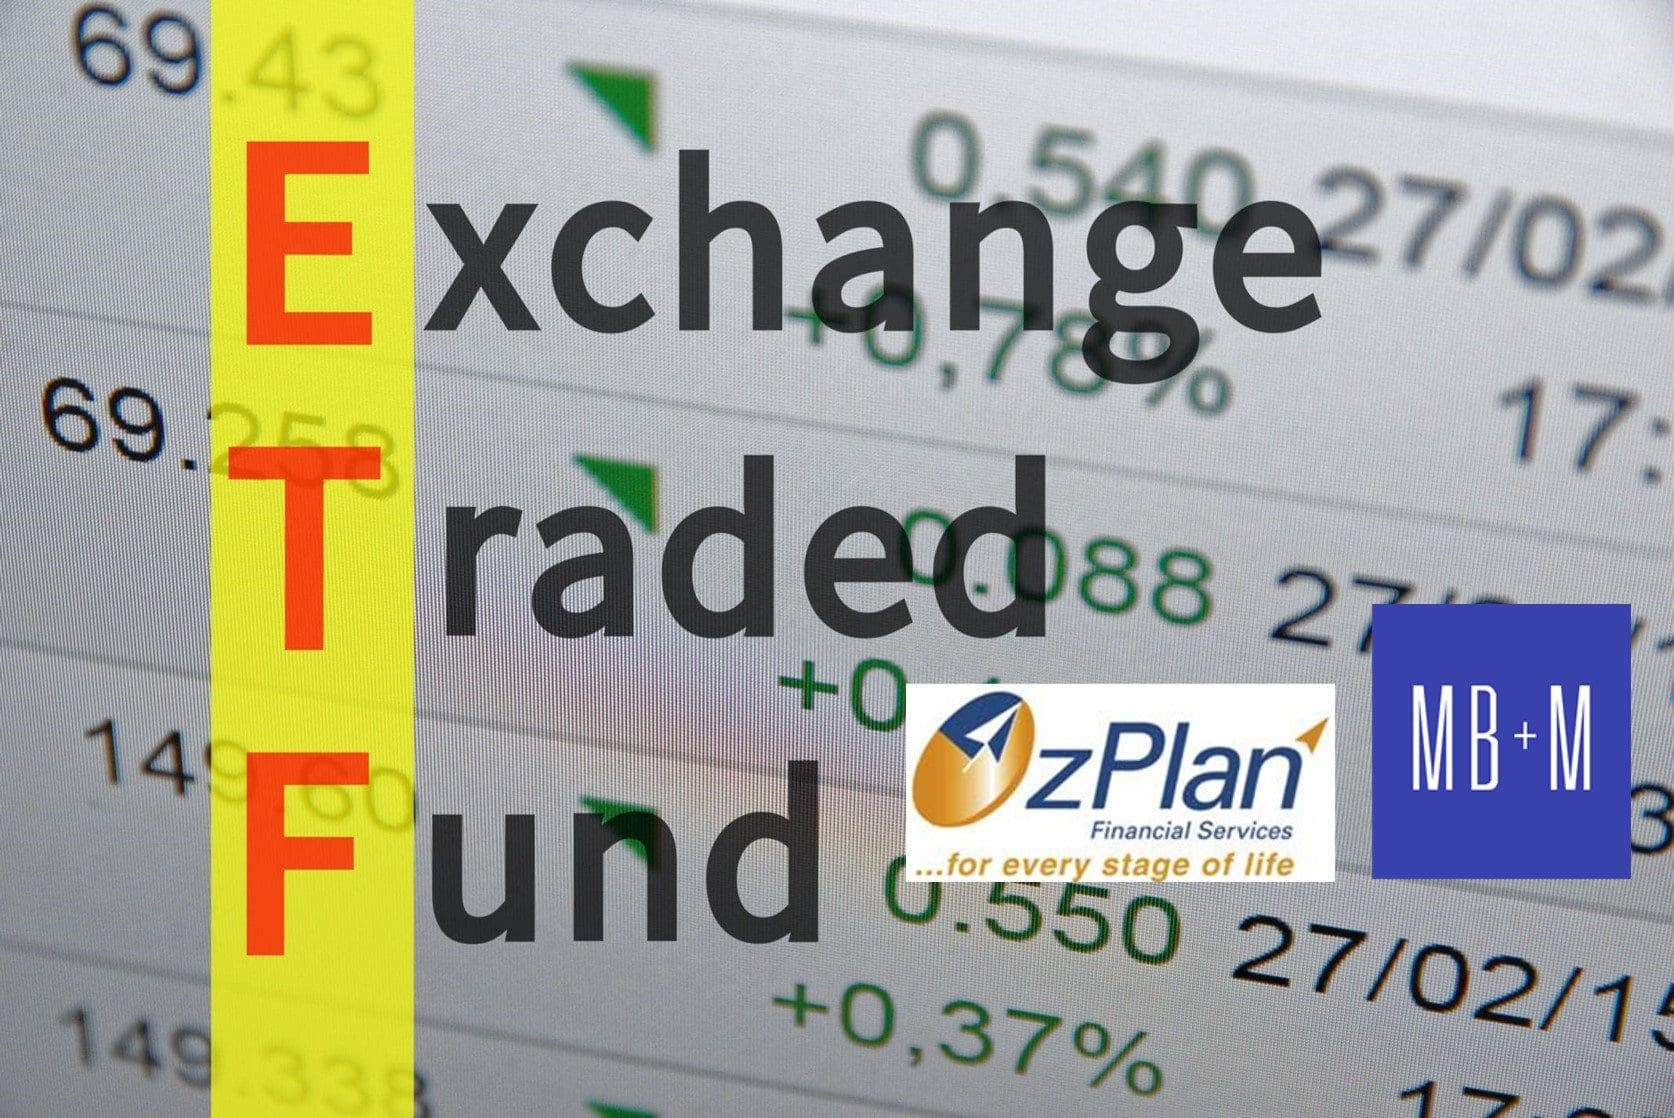 Why are ETFs all the rage?   Is this an investment I should consider?